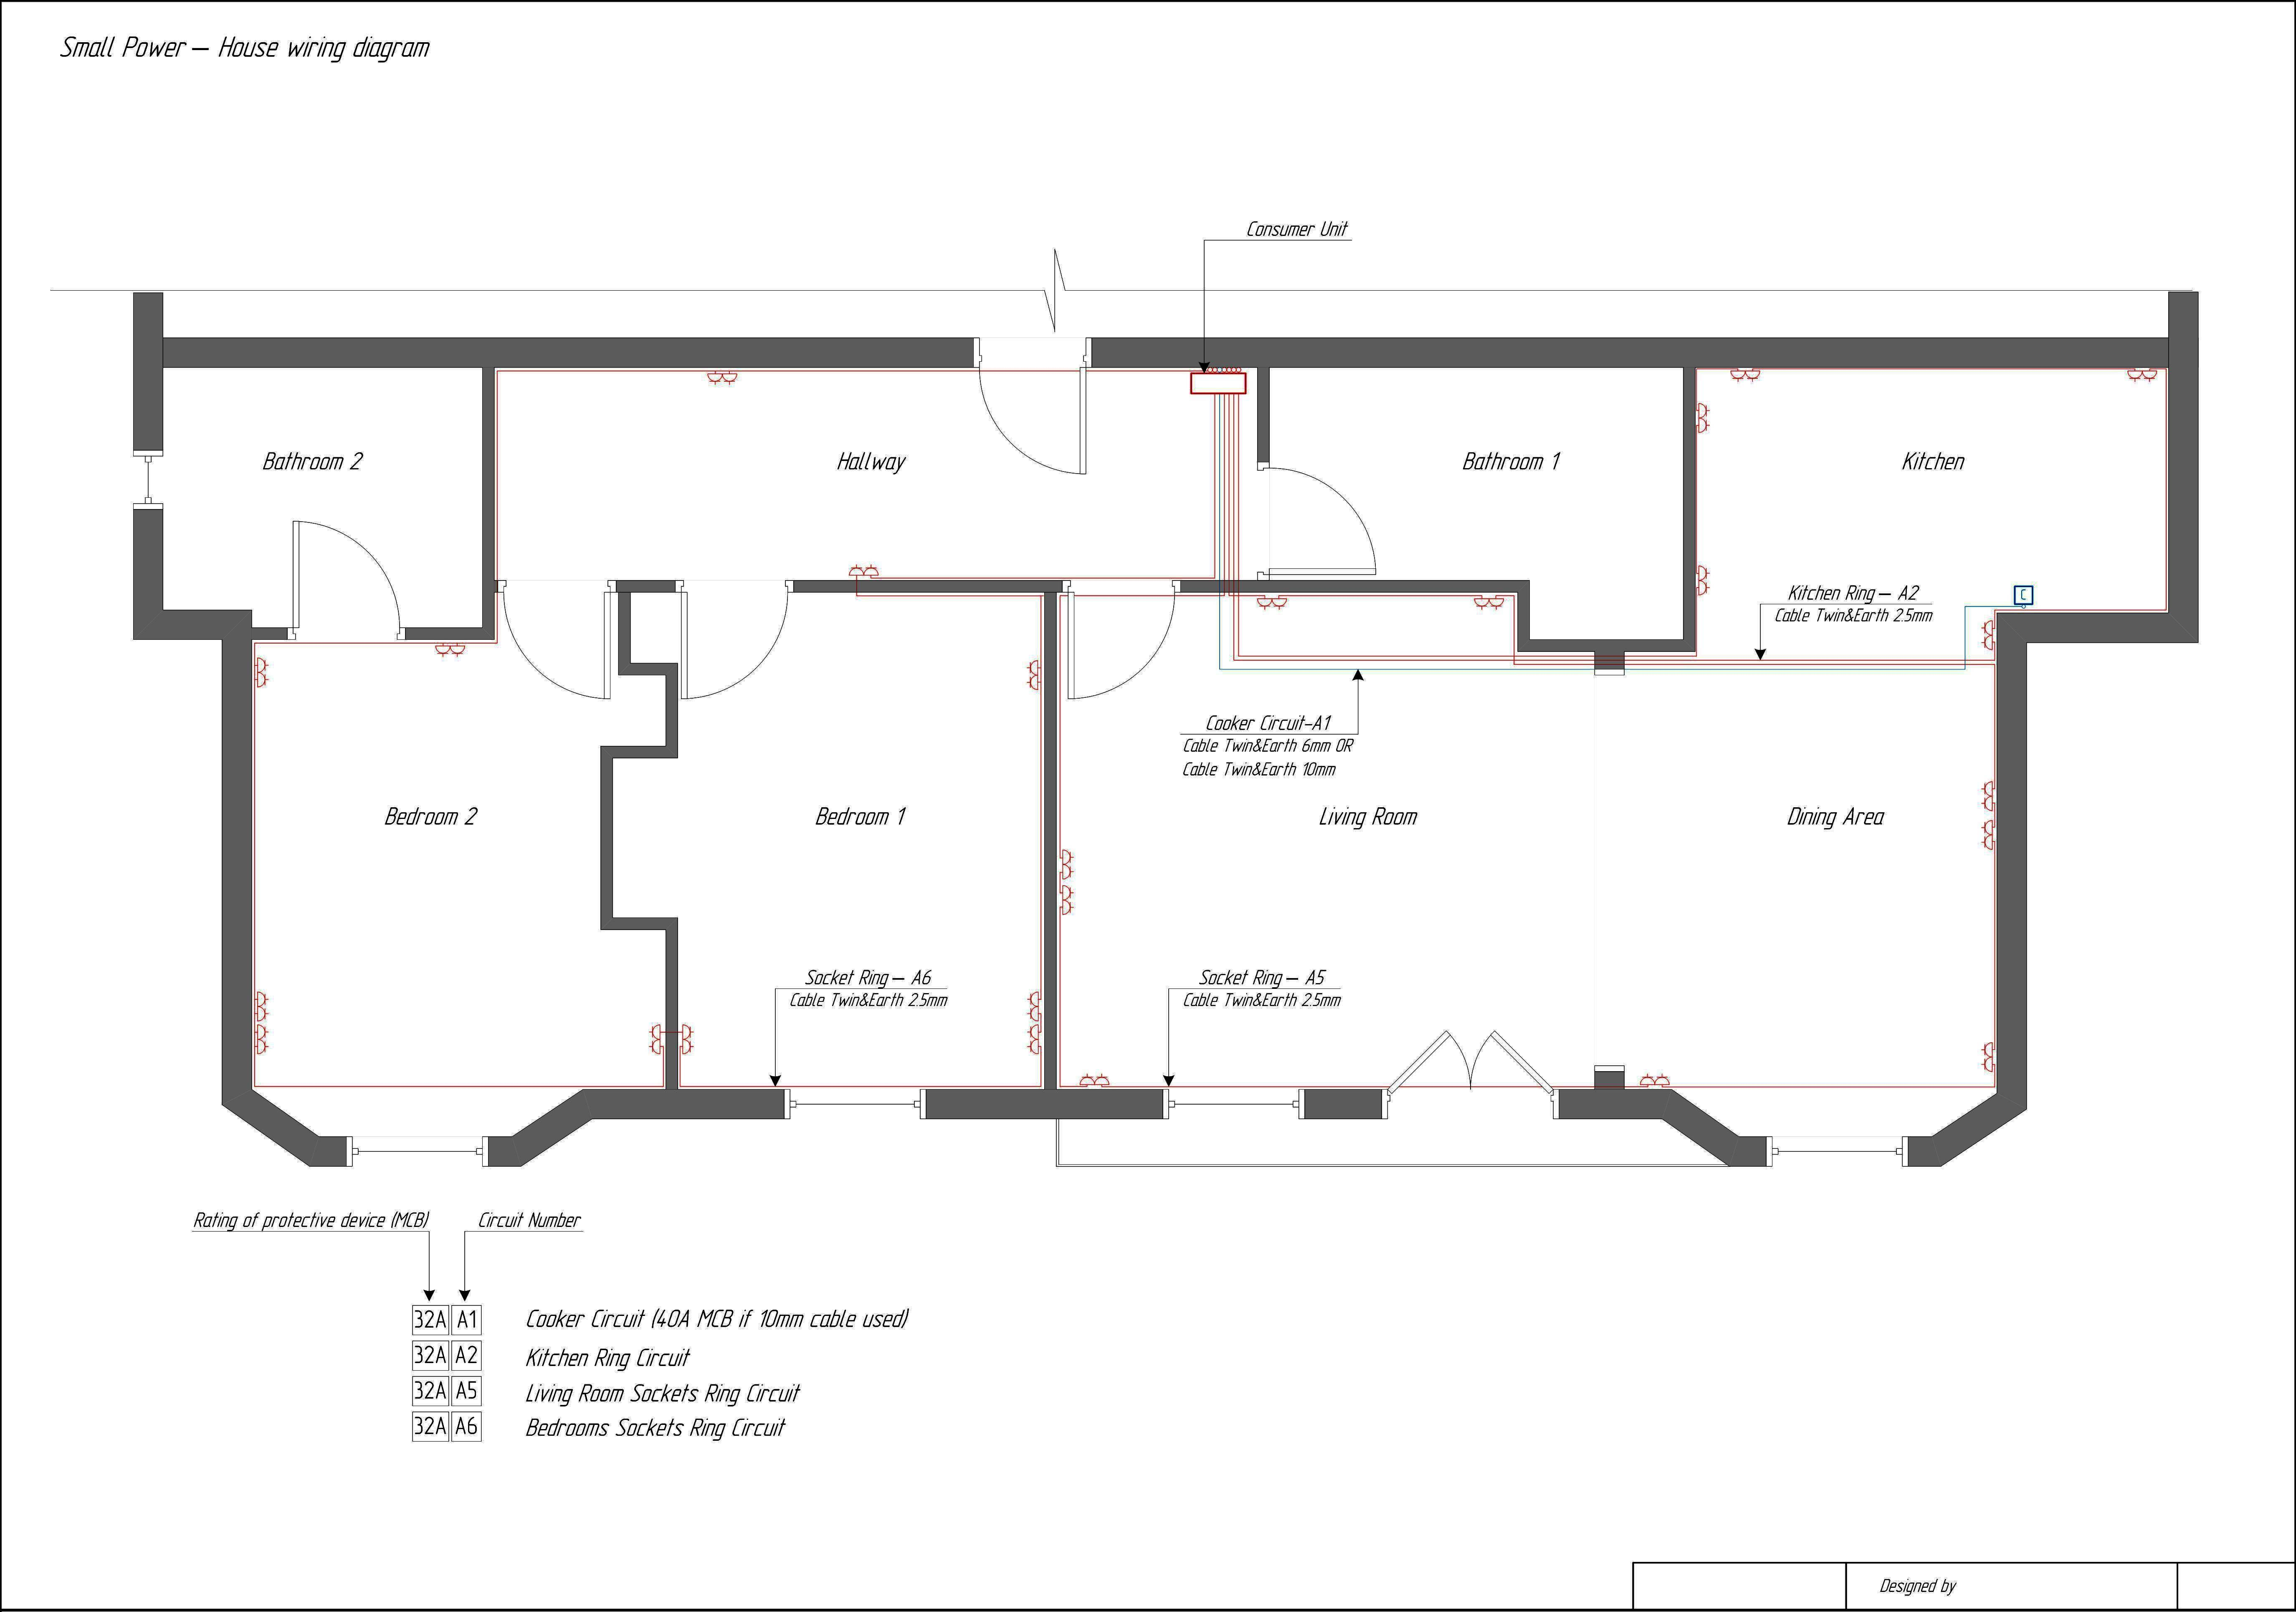 House Wiring Diagram Most Commonly Used Diagrams Home - Home Plans &  Blueprints | #60371Home Plans & Blueprints